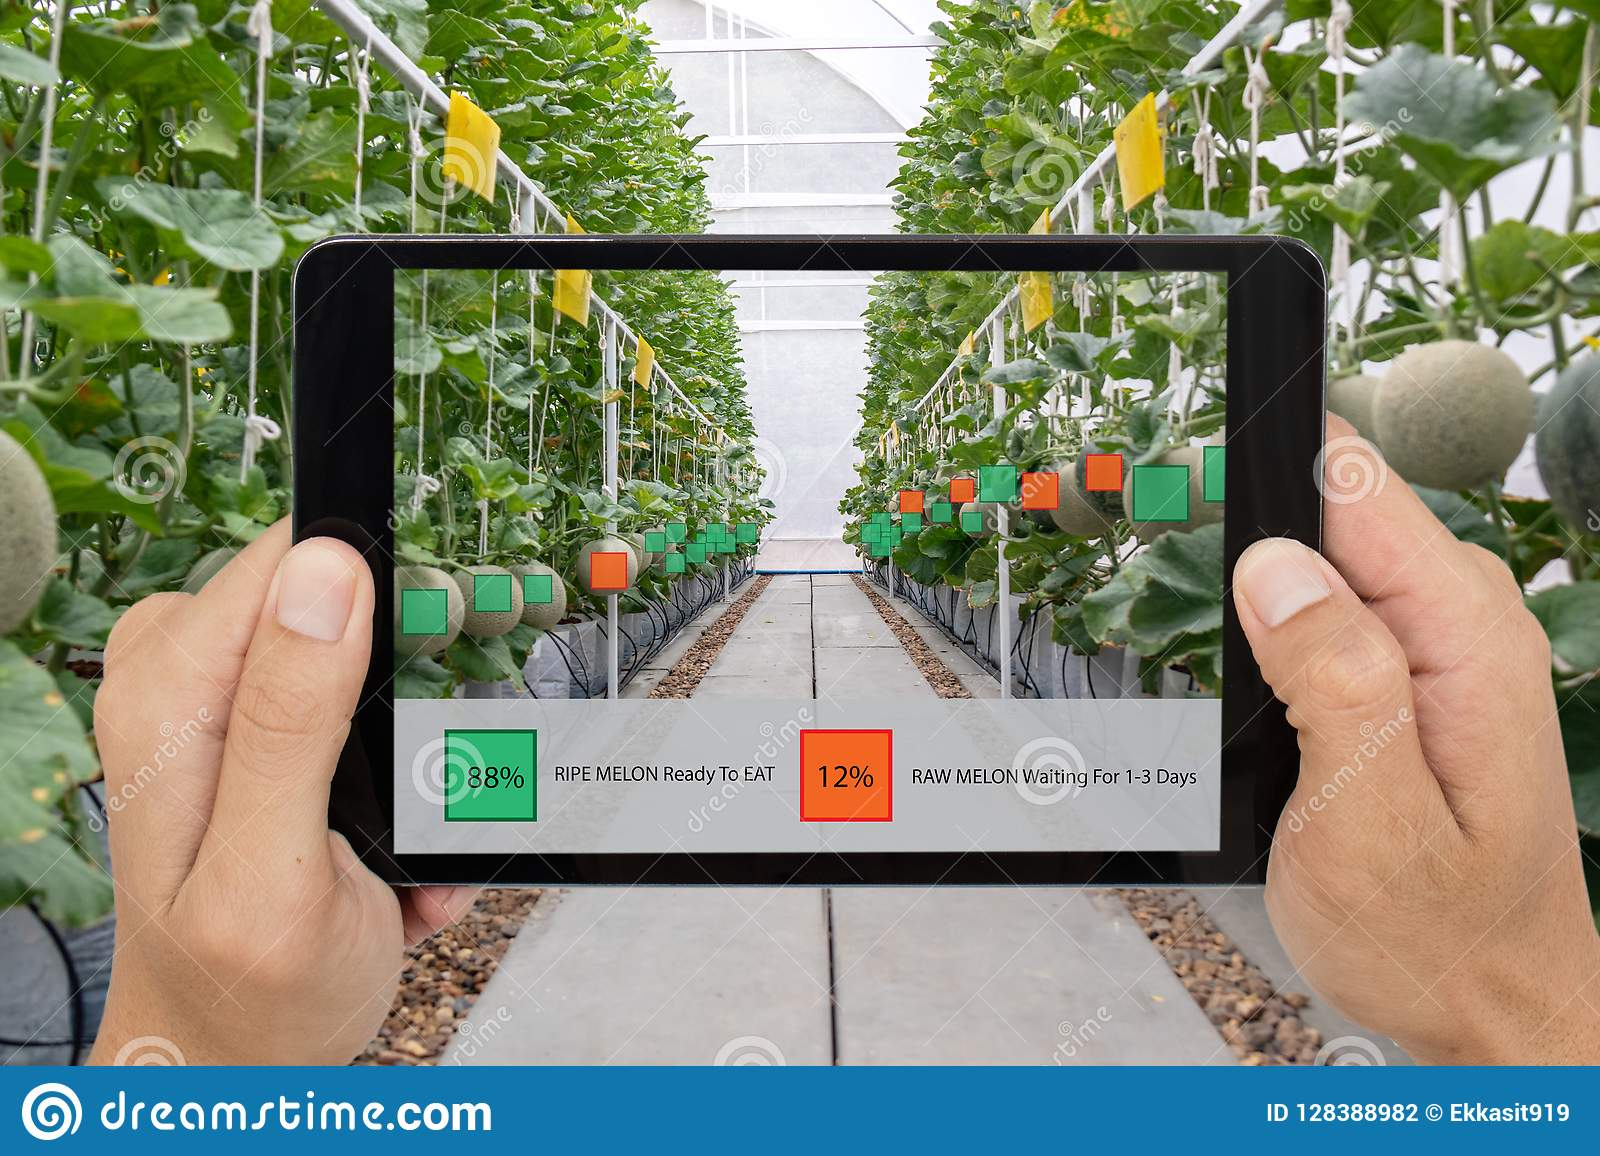 Iot smart farming, agriculture industry 4.0 technology concept, farmer hold the tablet to use augmented mixed virtual reality soft